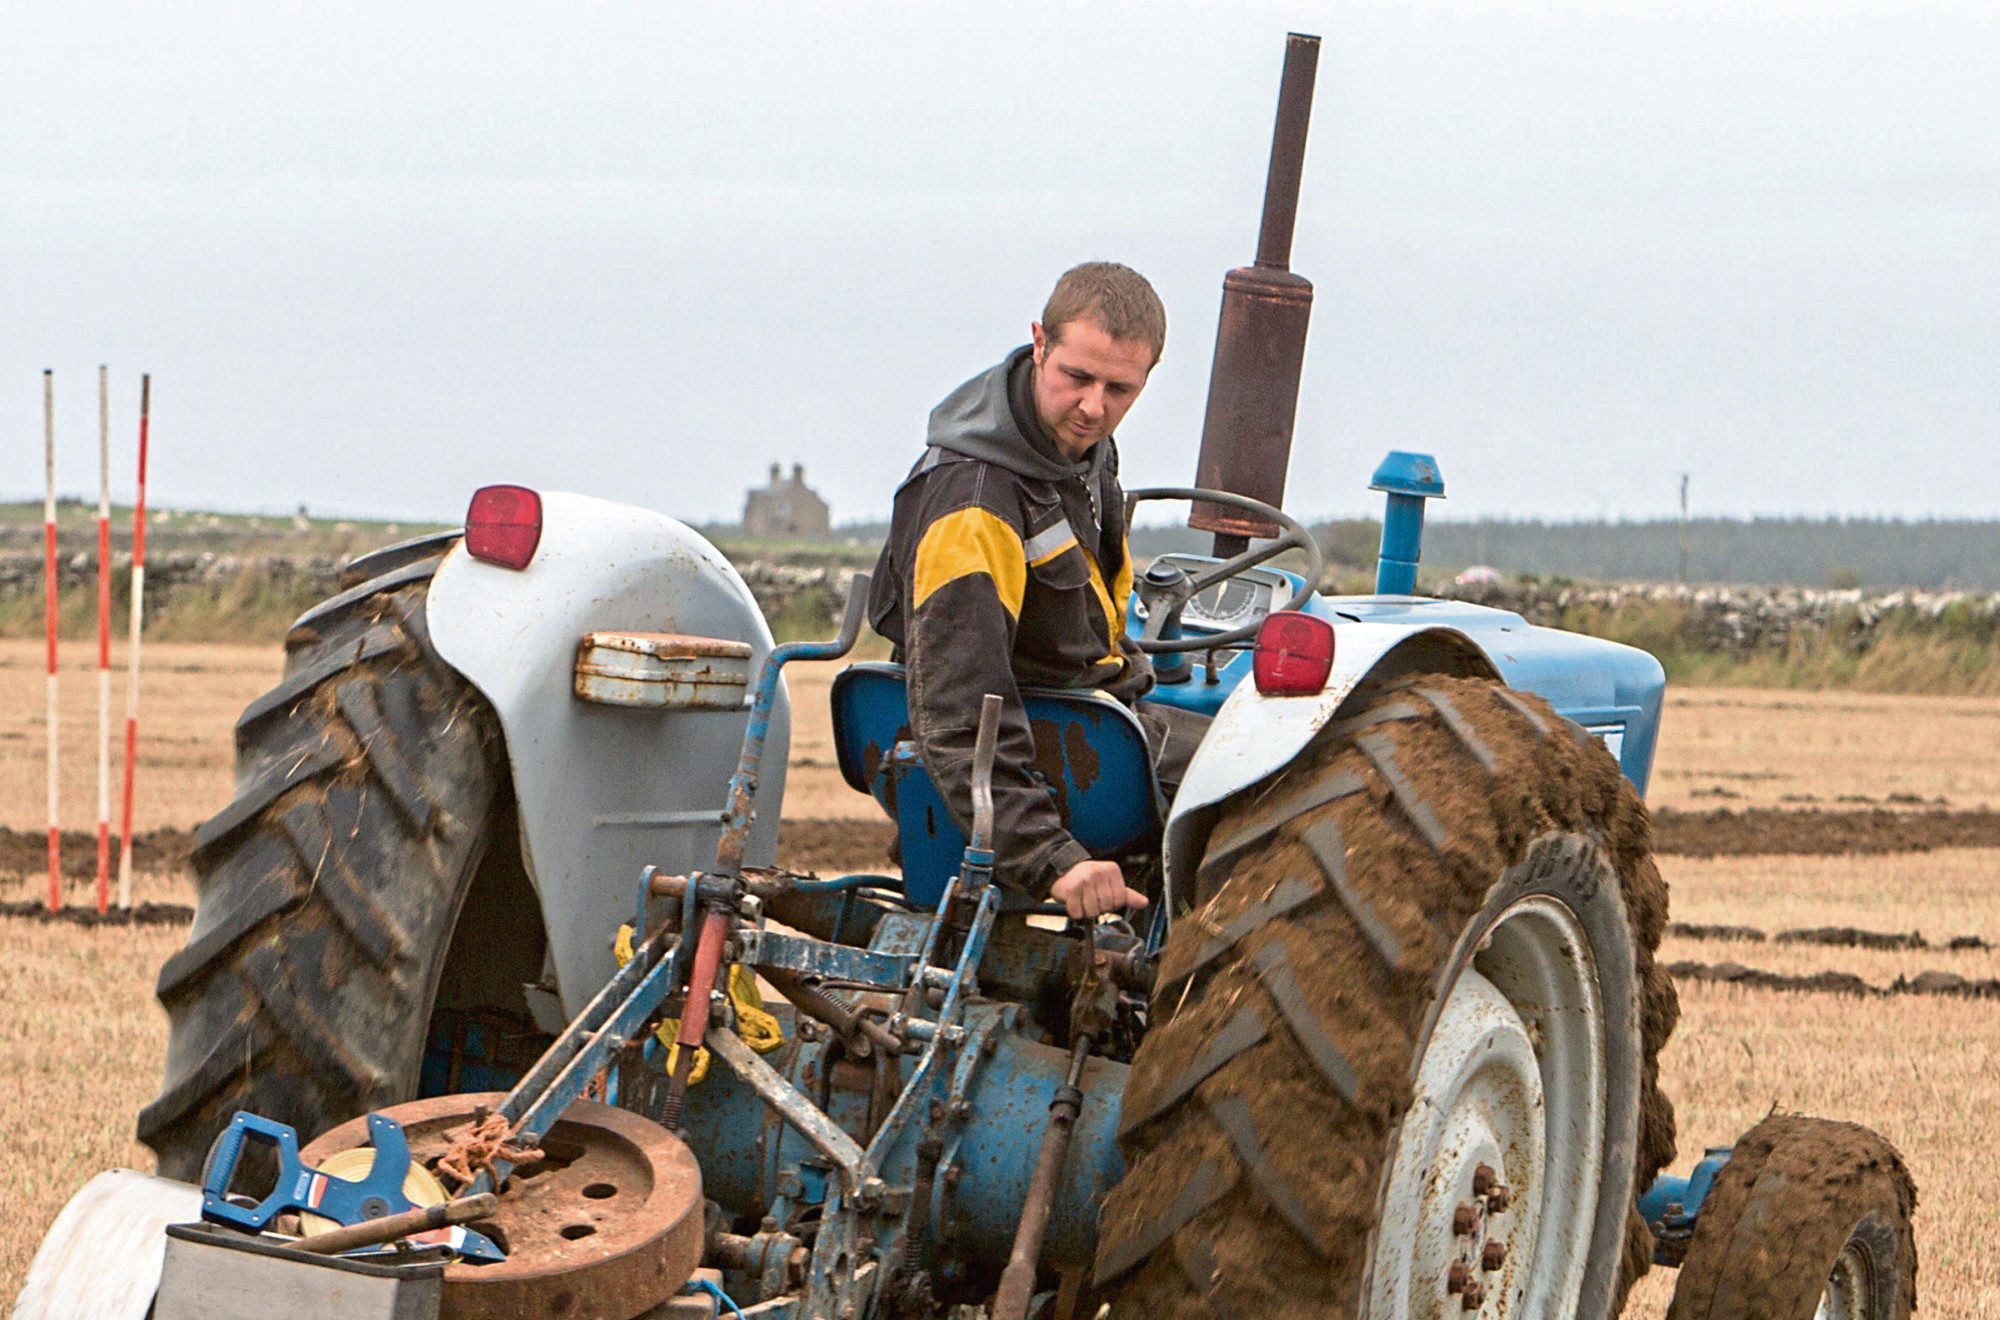 Graeme Mackay, Buldoo, Dounreay, won the open and county championship, along with an armfull of other trophies. He was using a Ford 4000 tractor and Ransomes plough.